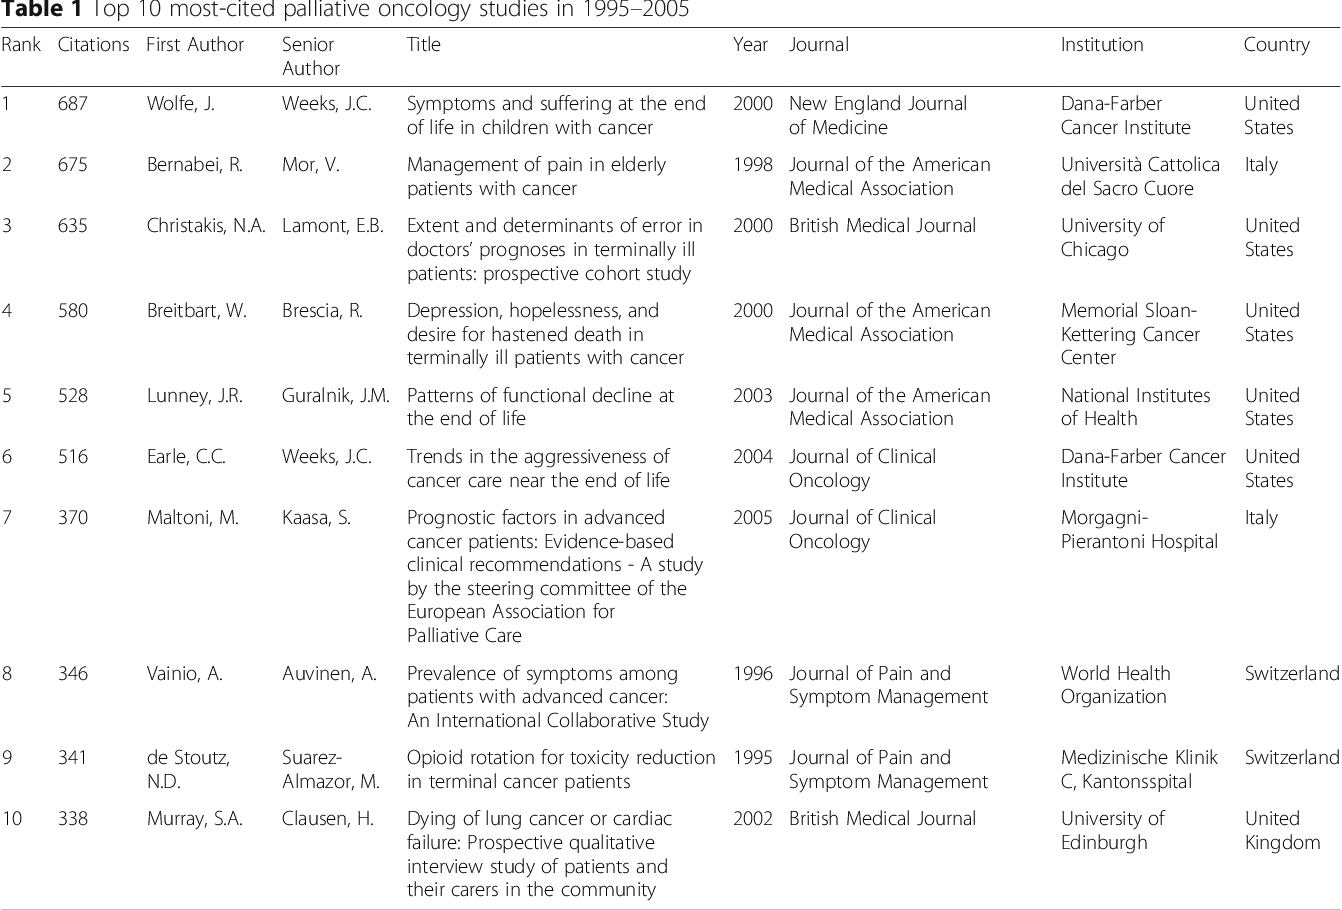 Characteristics and impact of the most-cited palliative